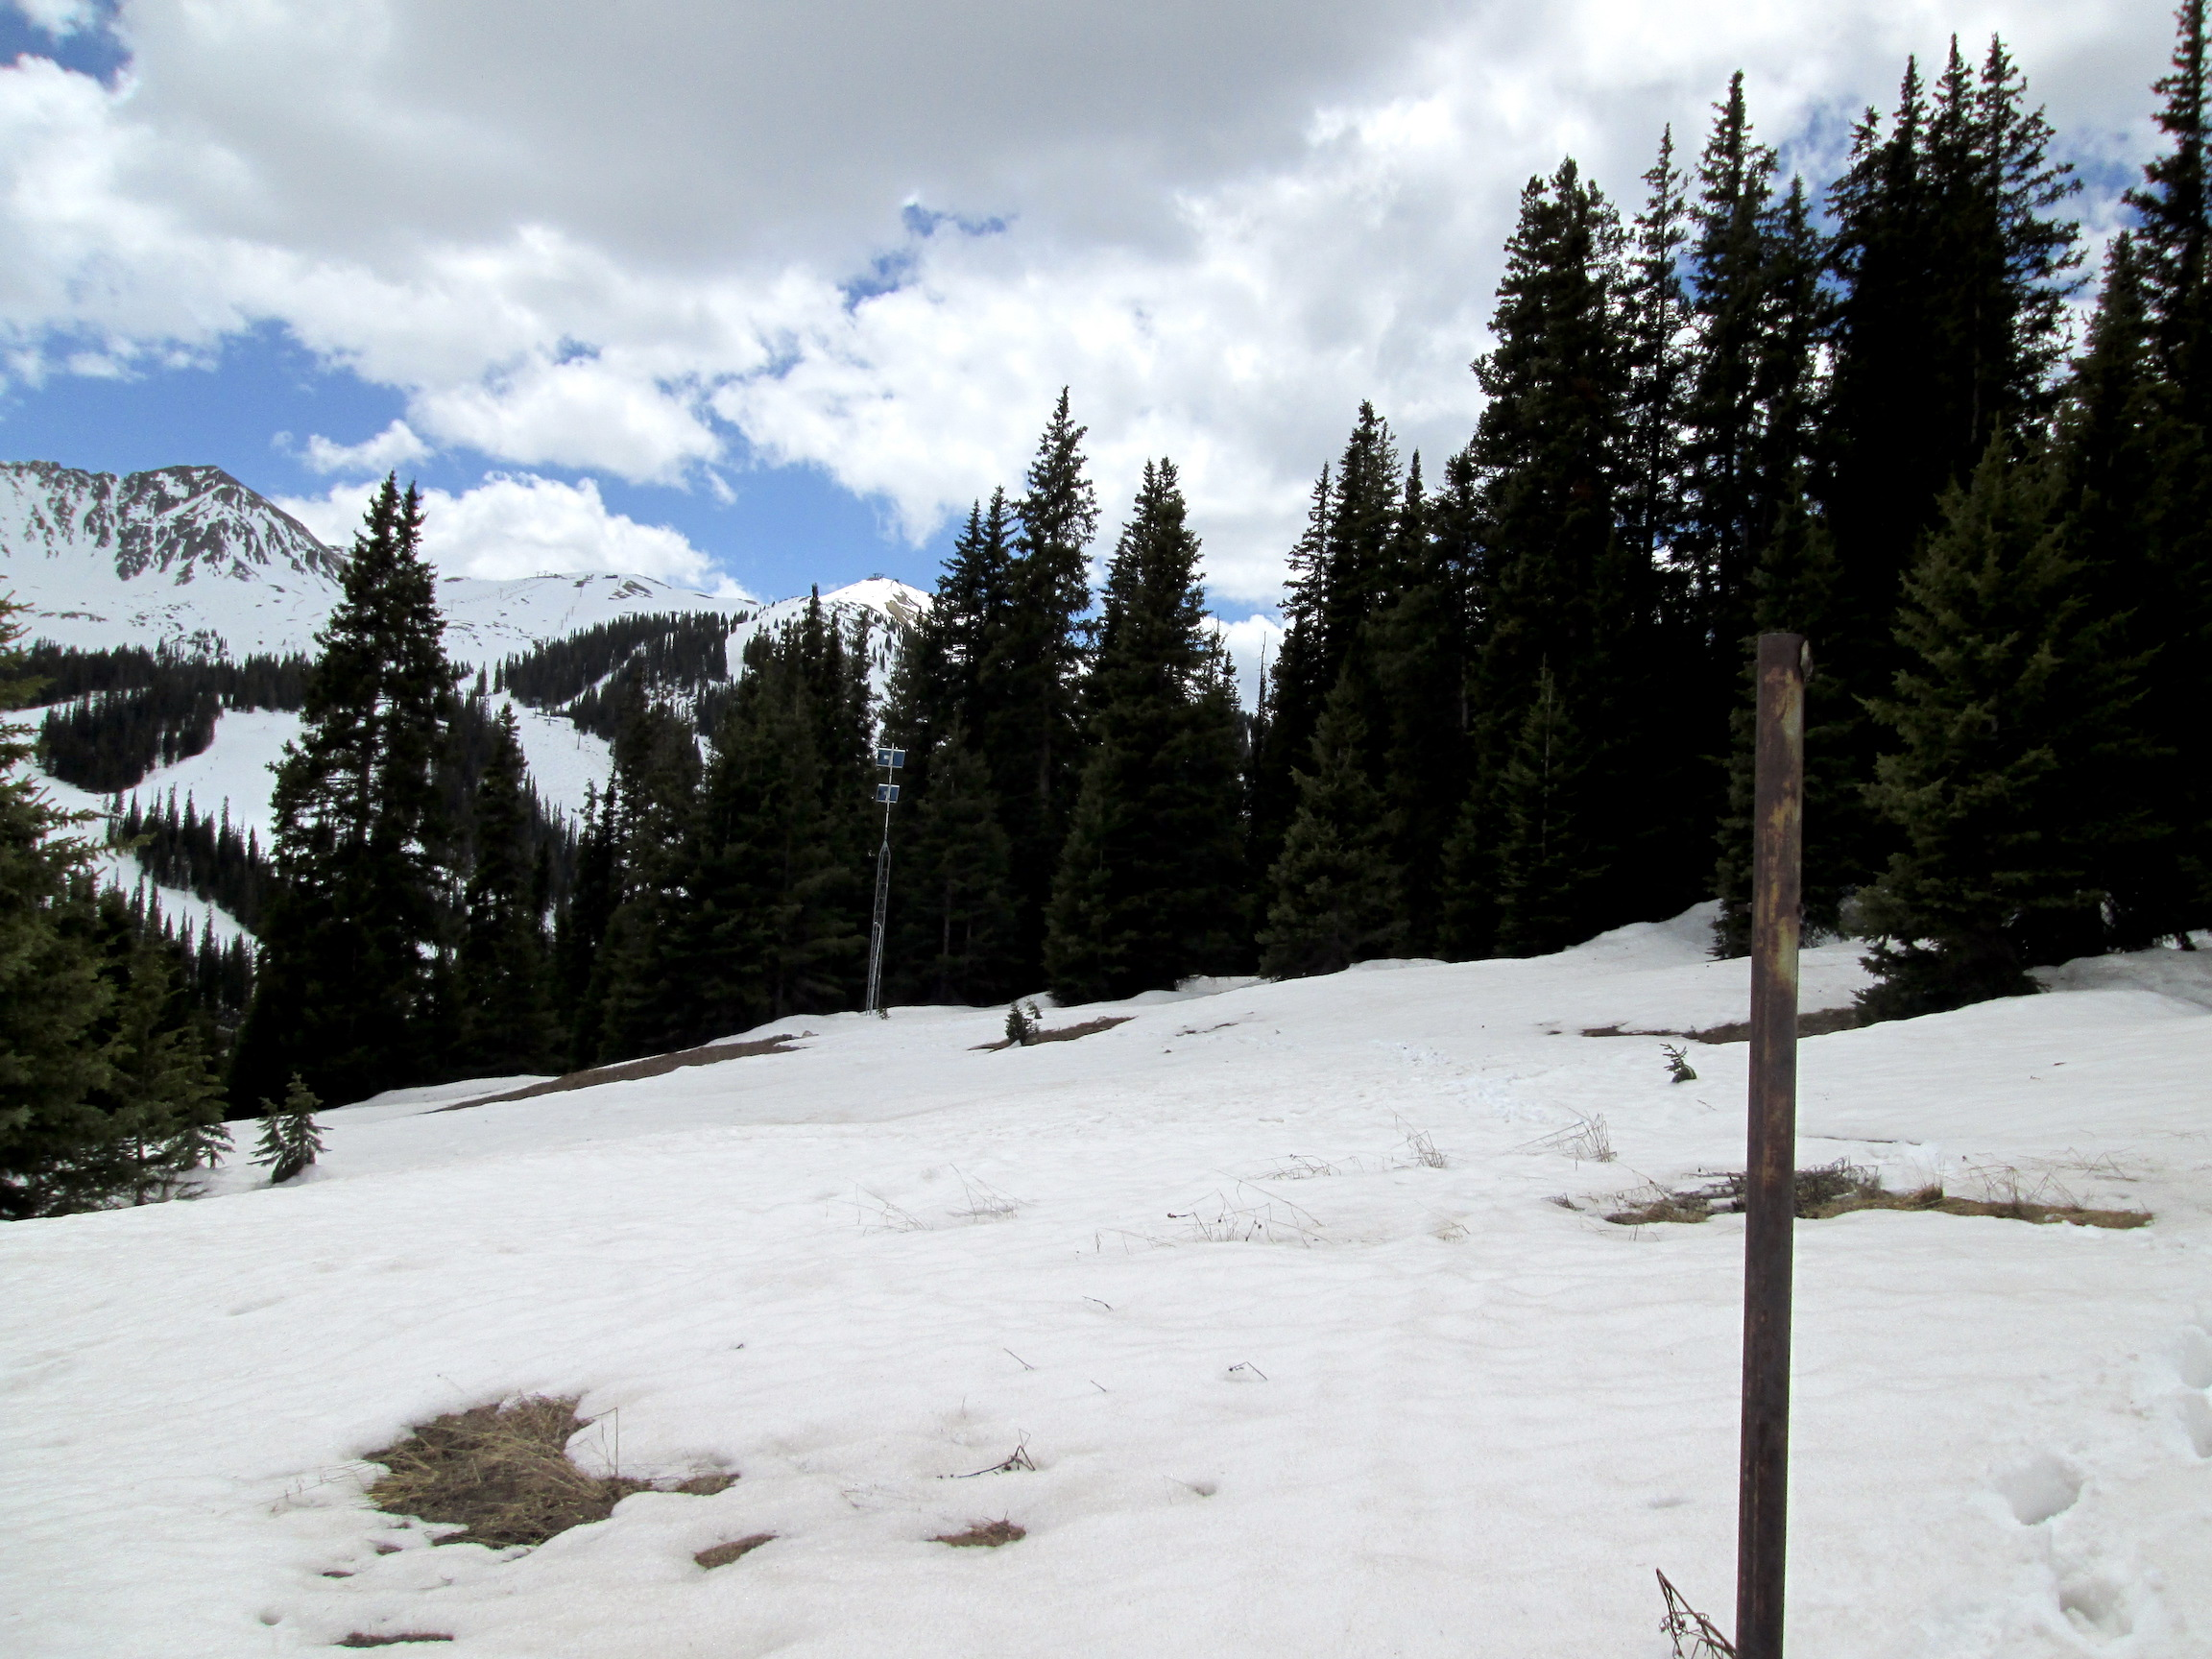 """Picture taken from Grizzly Peak sample site on June 1. About 1.5' of snow depth (6.6"""" of SWE) remains at the CODOS site, located in a clearing a few hundred feet from Grizzly SNOTEL, next to the tower visible in the background. Grizzly SNOTEL reported 5.4"""" of SWE on June 1. Over the past 8 days since May 26, SWE has decreased a total of 5""""."""